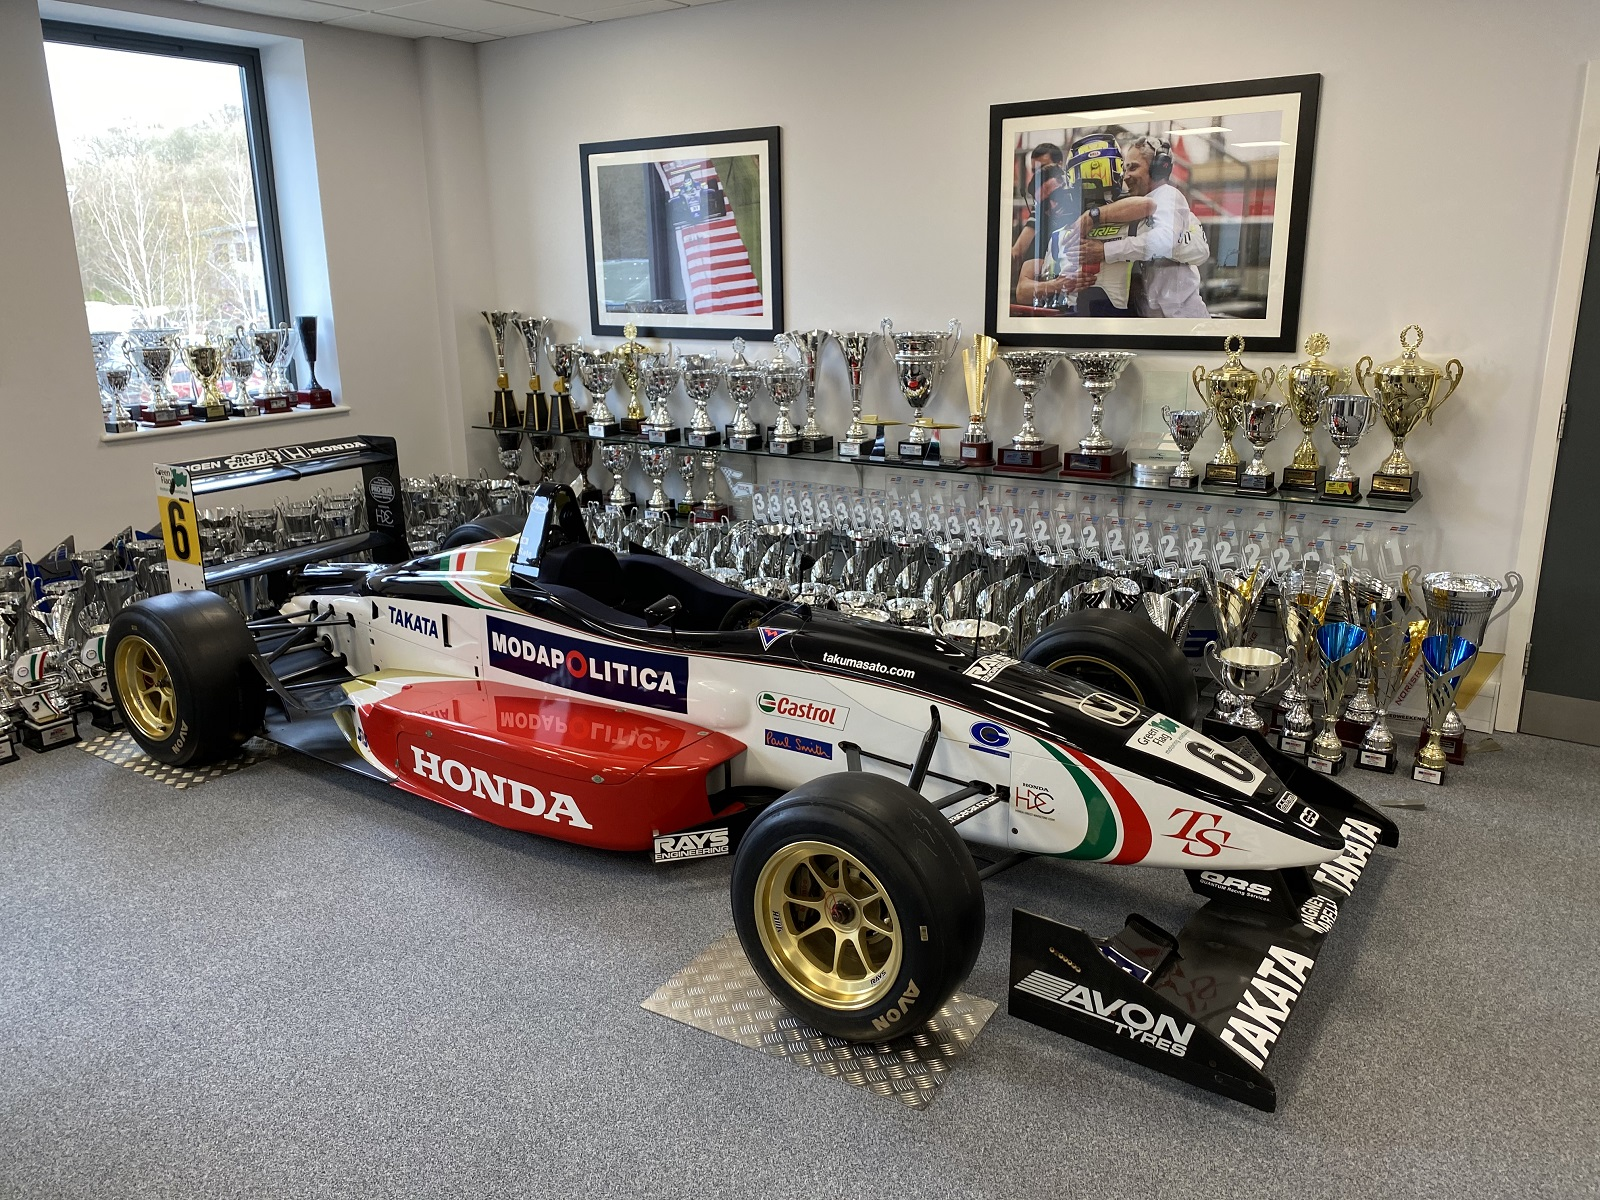 Inside the trophy room of Carlin Motorsport, a client of WemTech